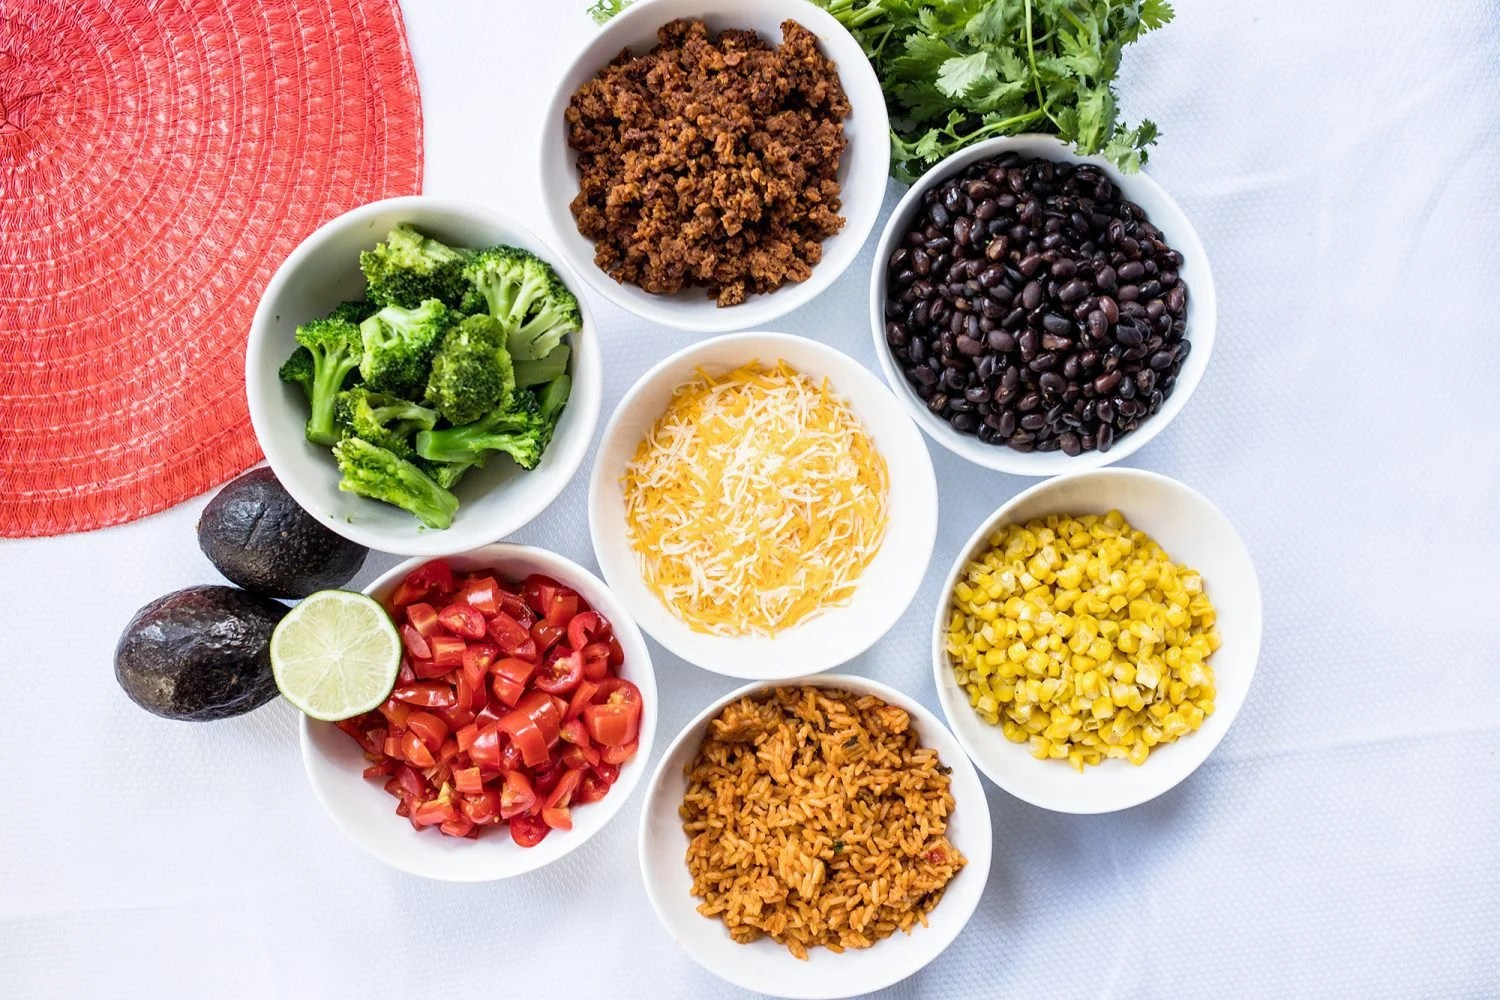 walmart, feeding america, fight hunger, spark change, 1 item 1 meal, 1 billion meals, taco bowl, taco, taco tuesday, taco bowl bar, vegetarian taco bowl, ultimate taco bowl, recipe, family friendly, kid approved